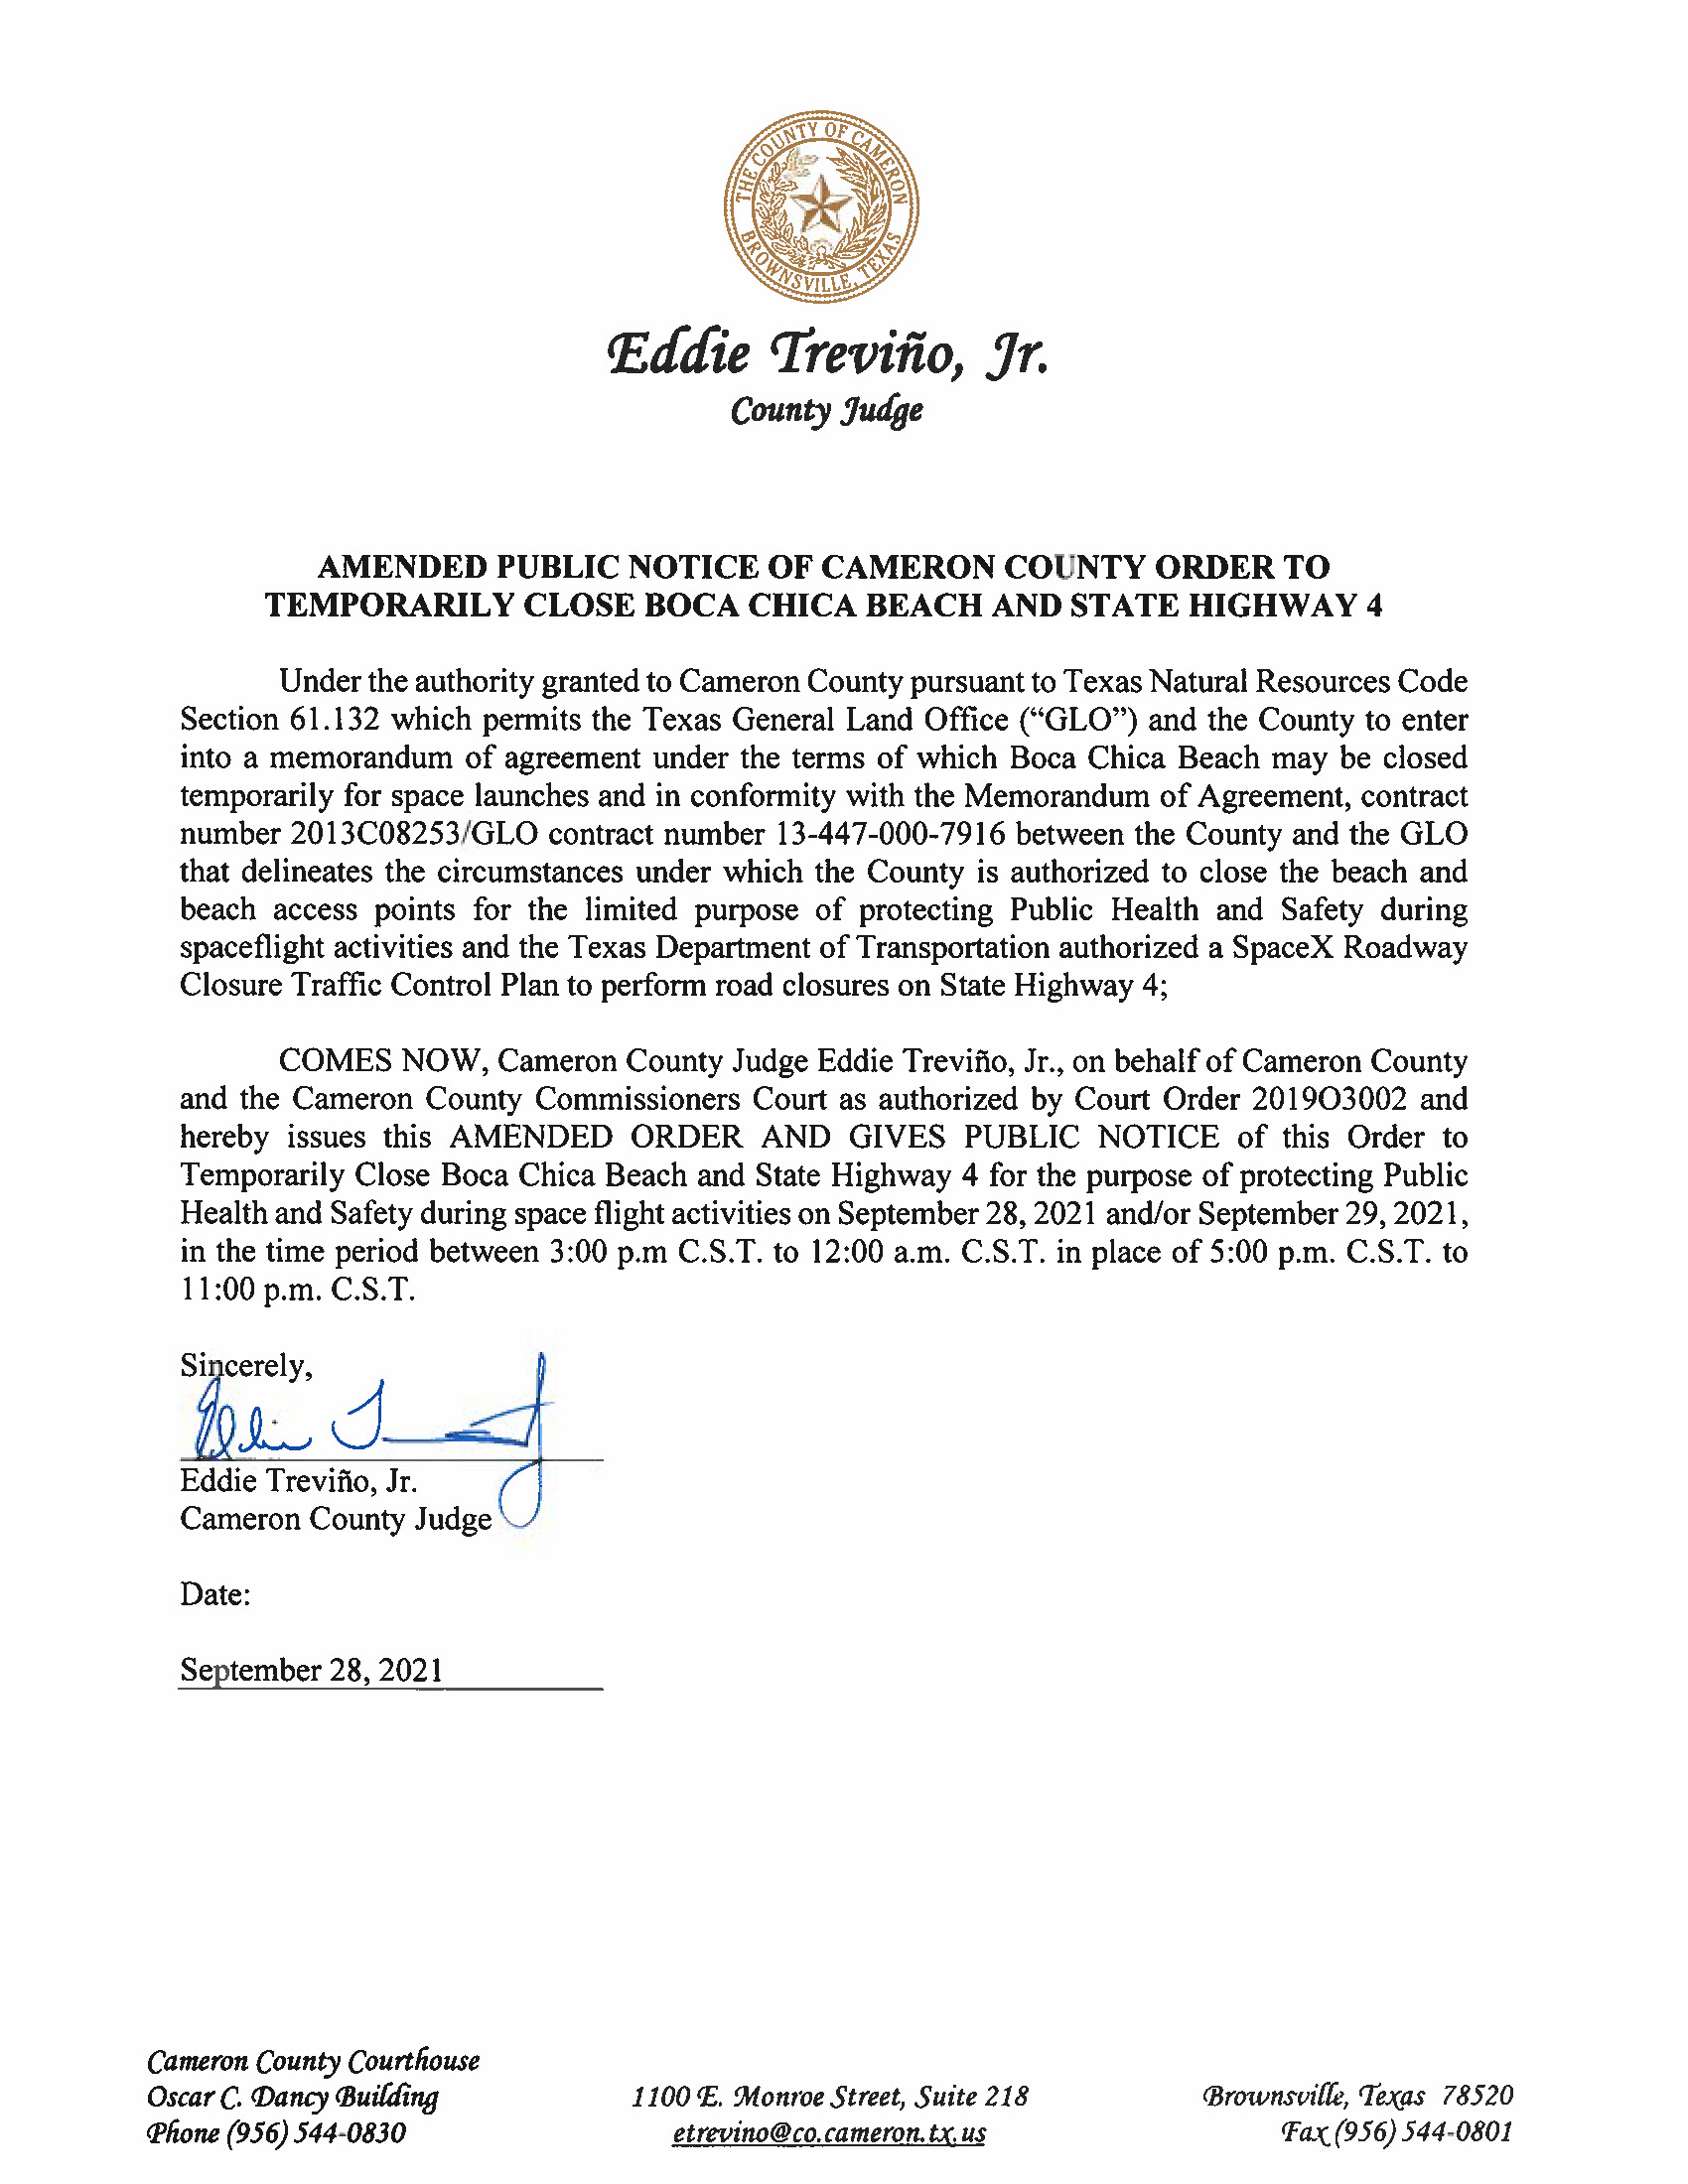 AMENDMENT PUBLIC NOTICE OF CAMERON COUNTY ORDER TO TEMP. BEACH CLOSURE AND HWY.09.28 29.2021